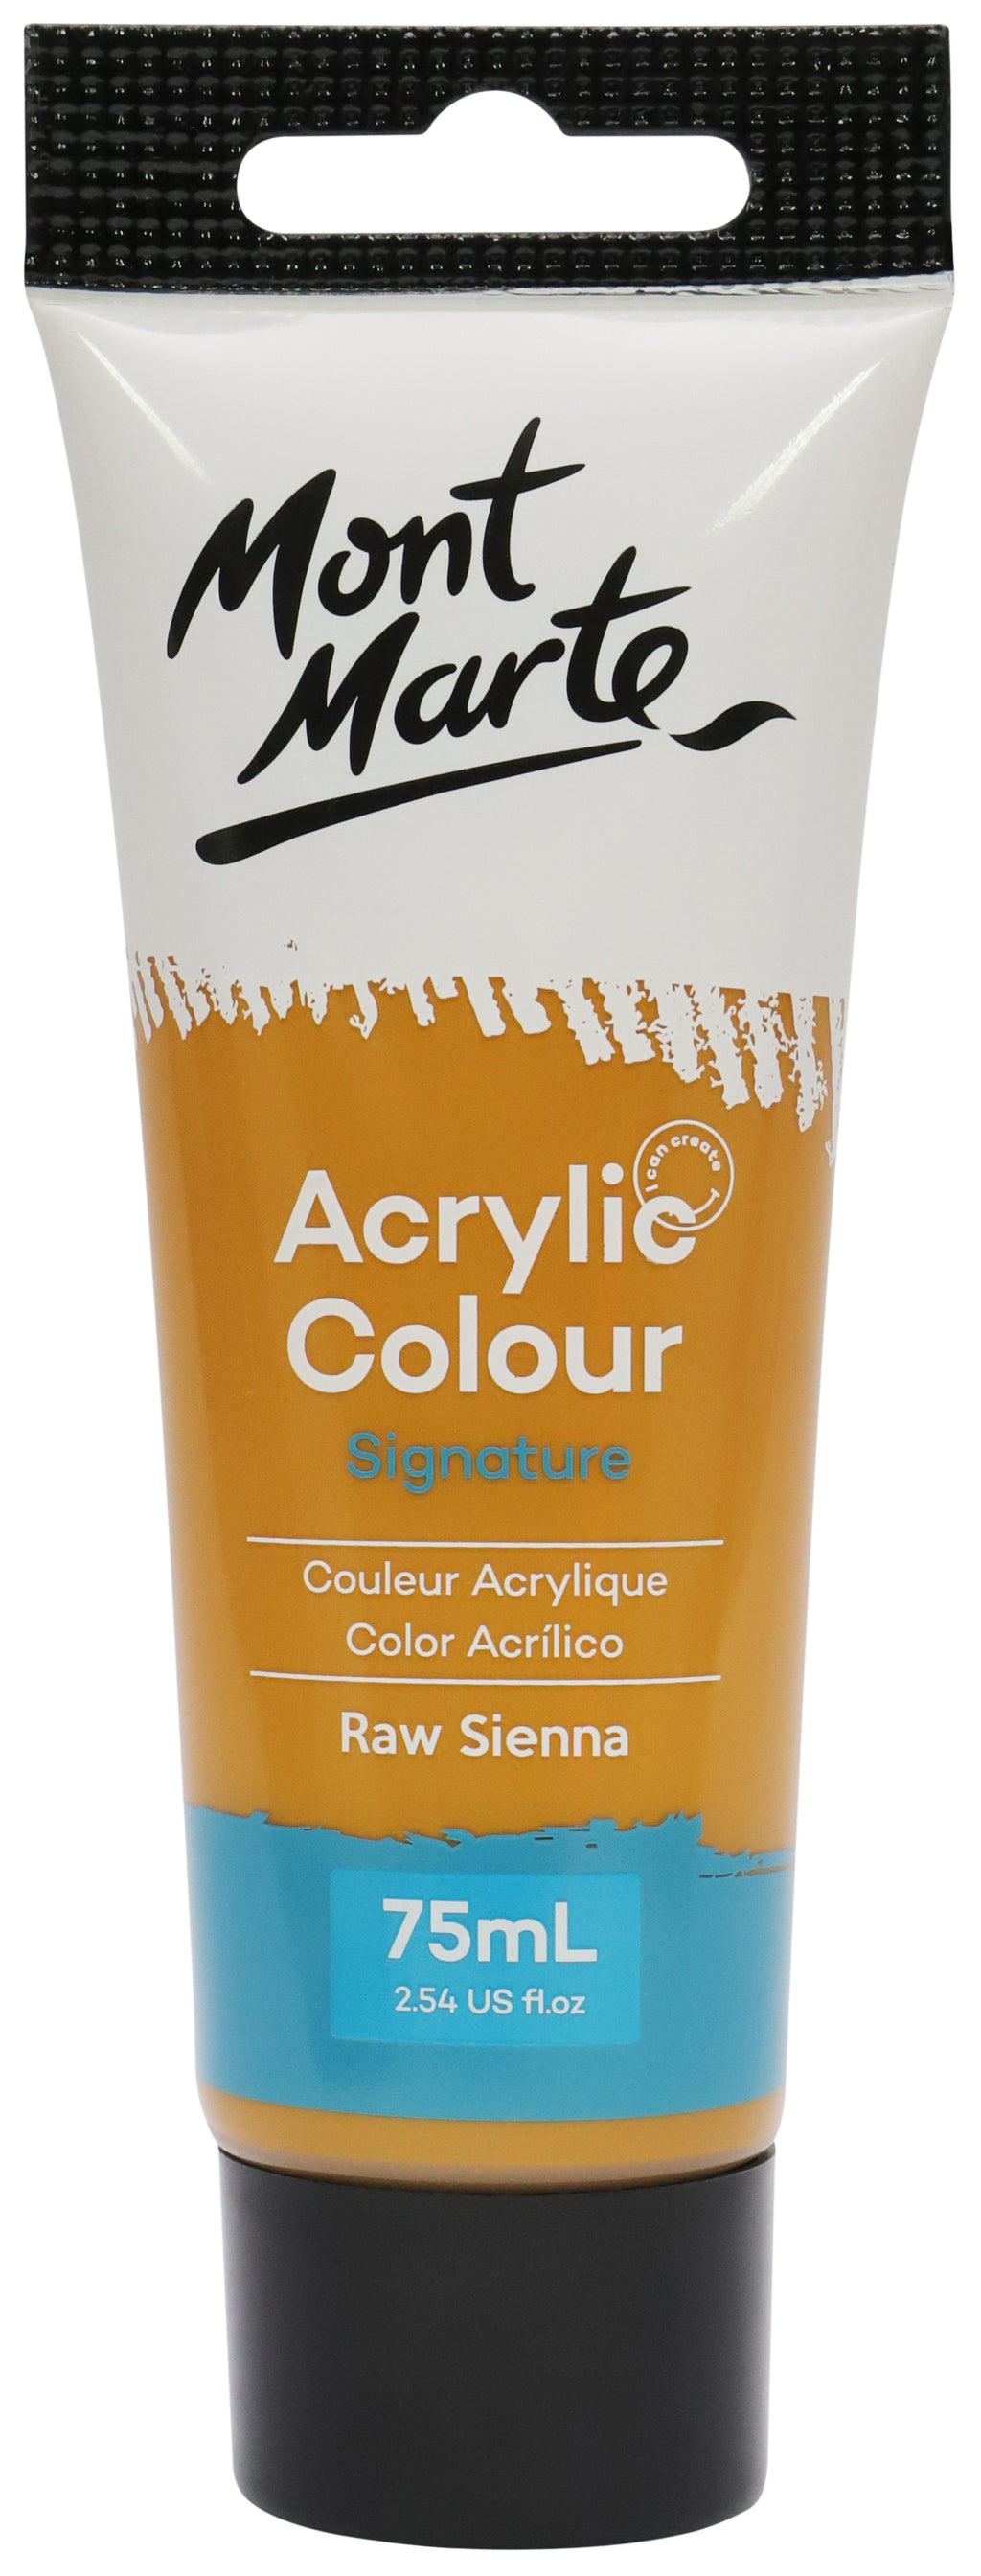 Mont Marte Acrylic Colour Paint Raw Sienna 75ml